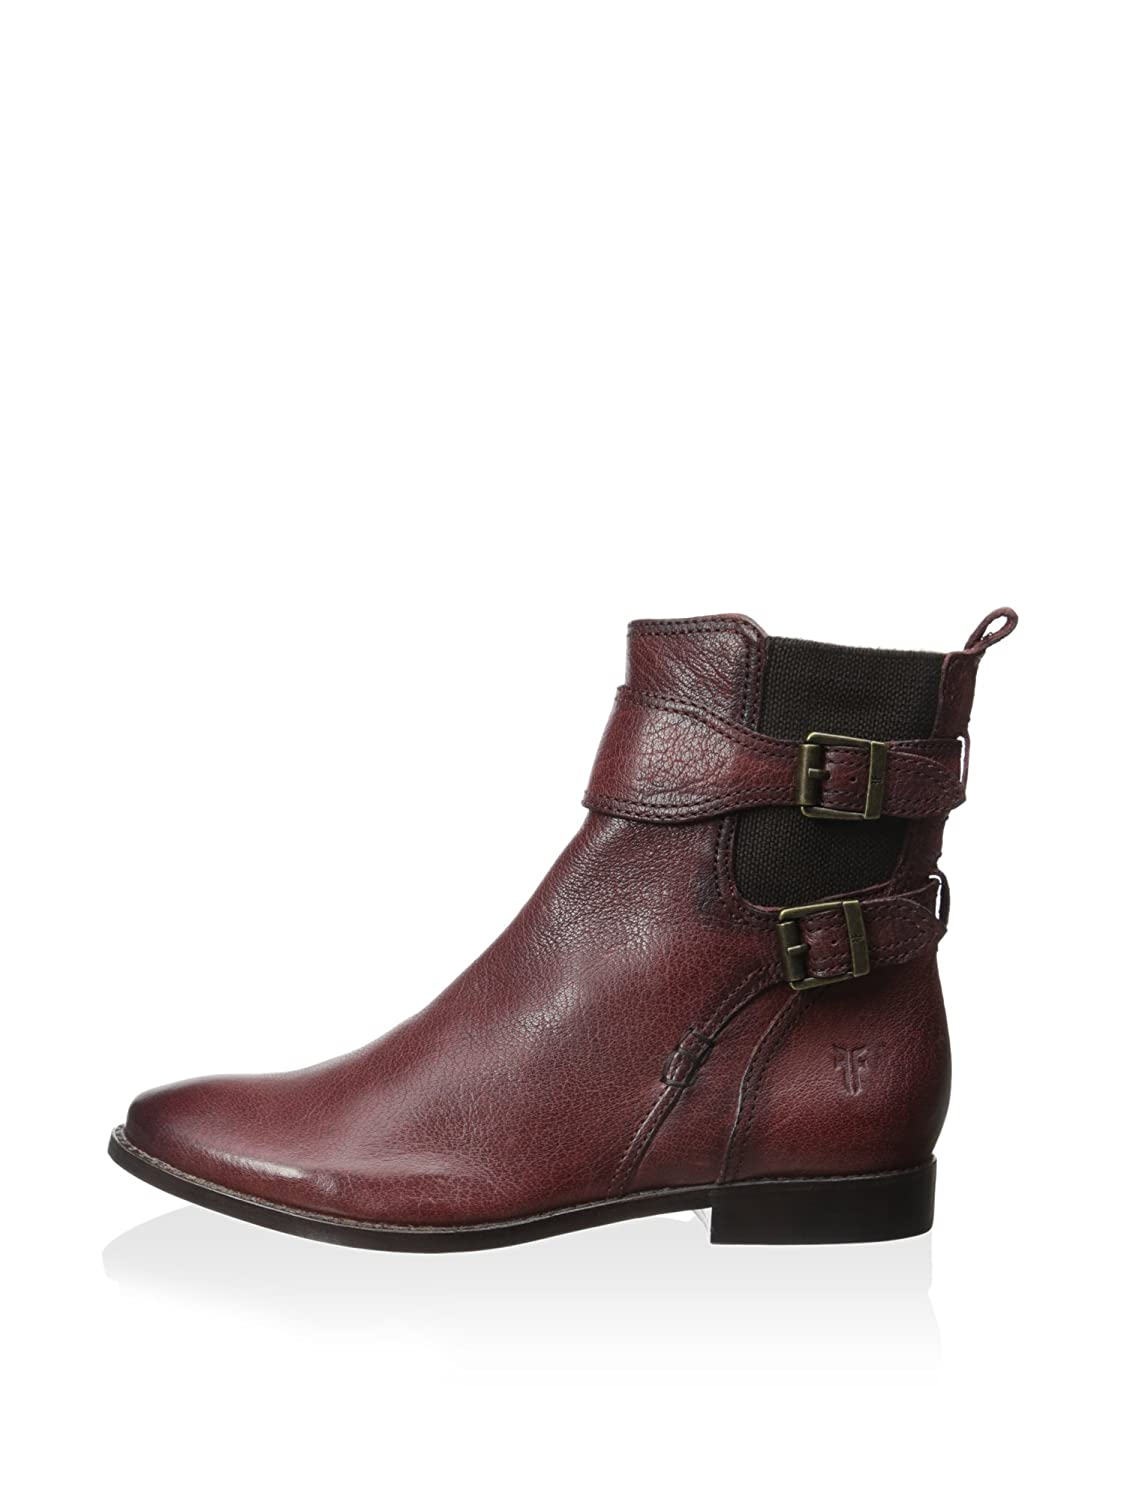 80d867023e09 Frye Women s Anna Gore Short Burnt Red Buffalo Leather Boot  Amazon.co.uk   Shoes   Bags